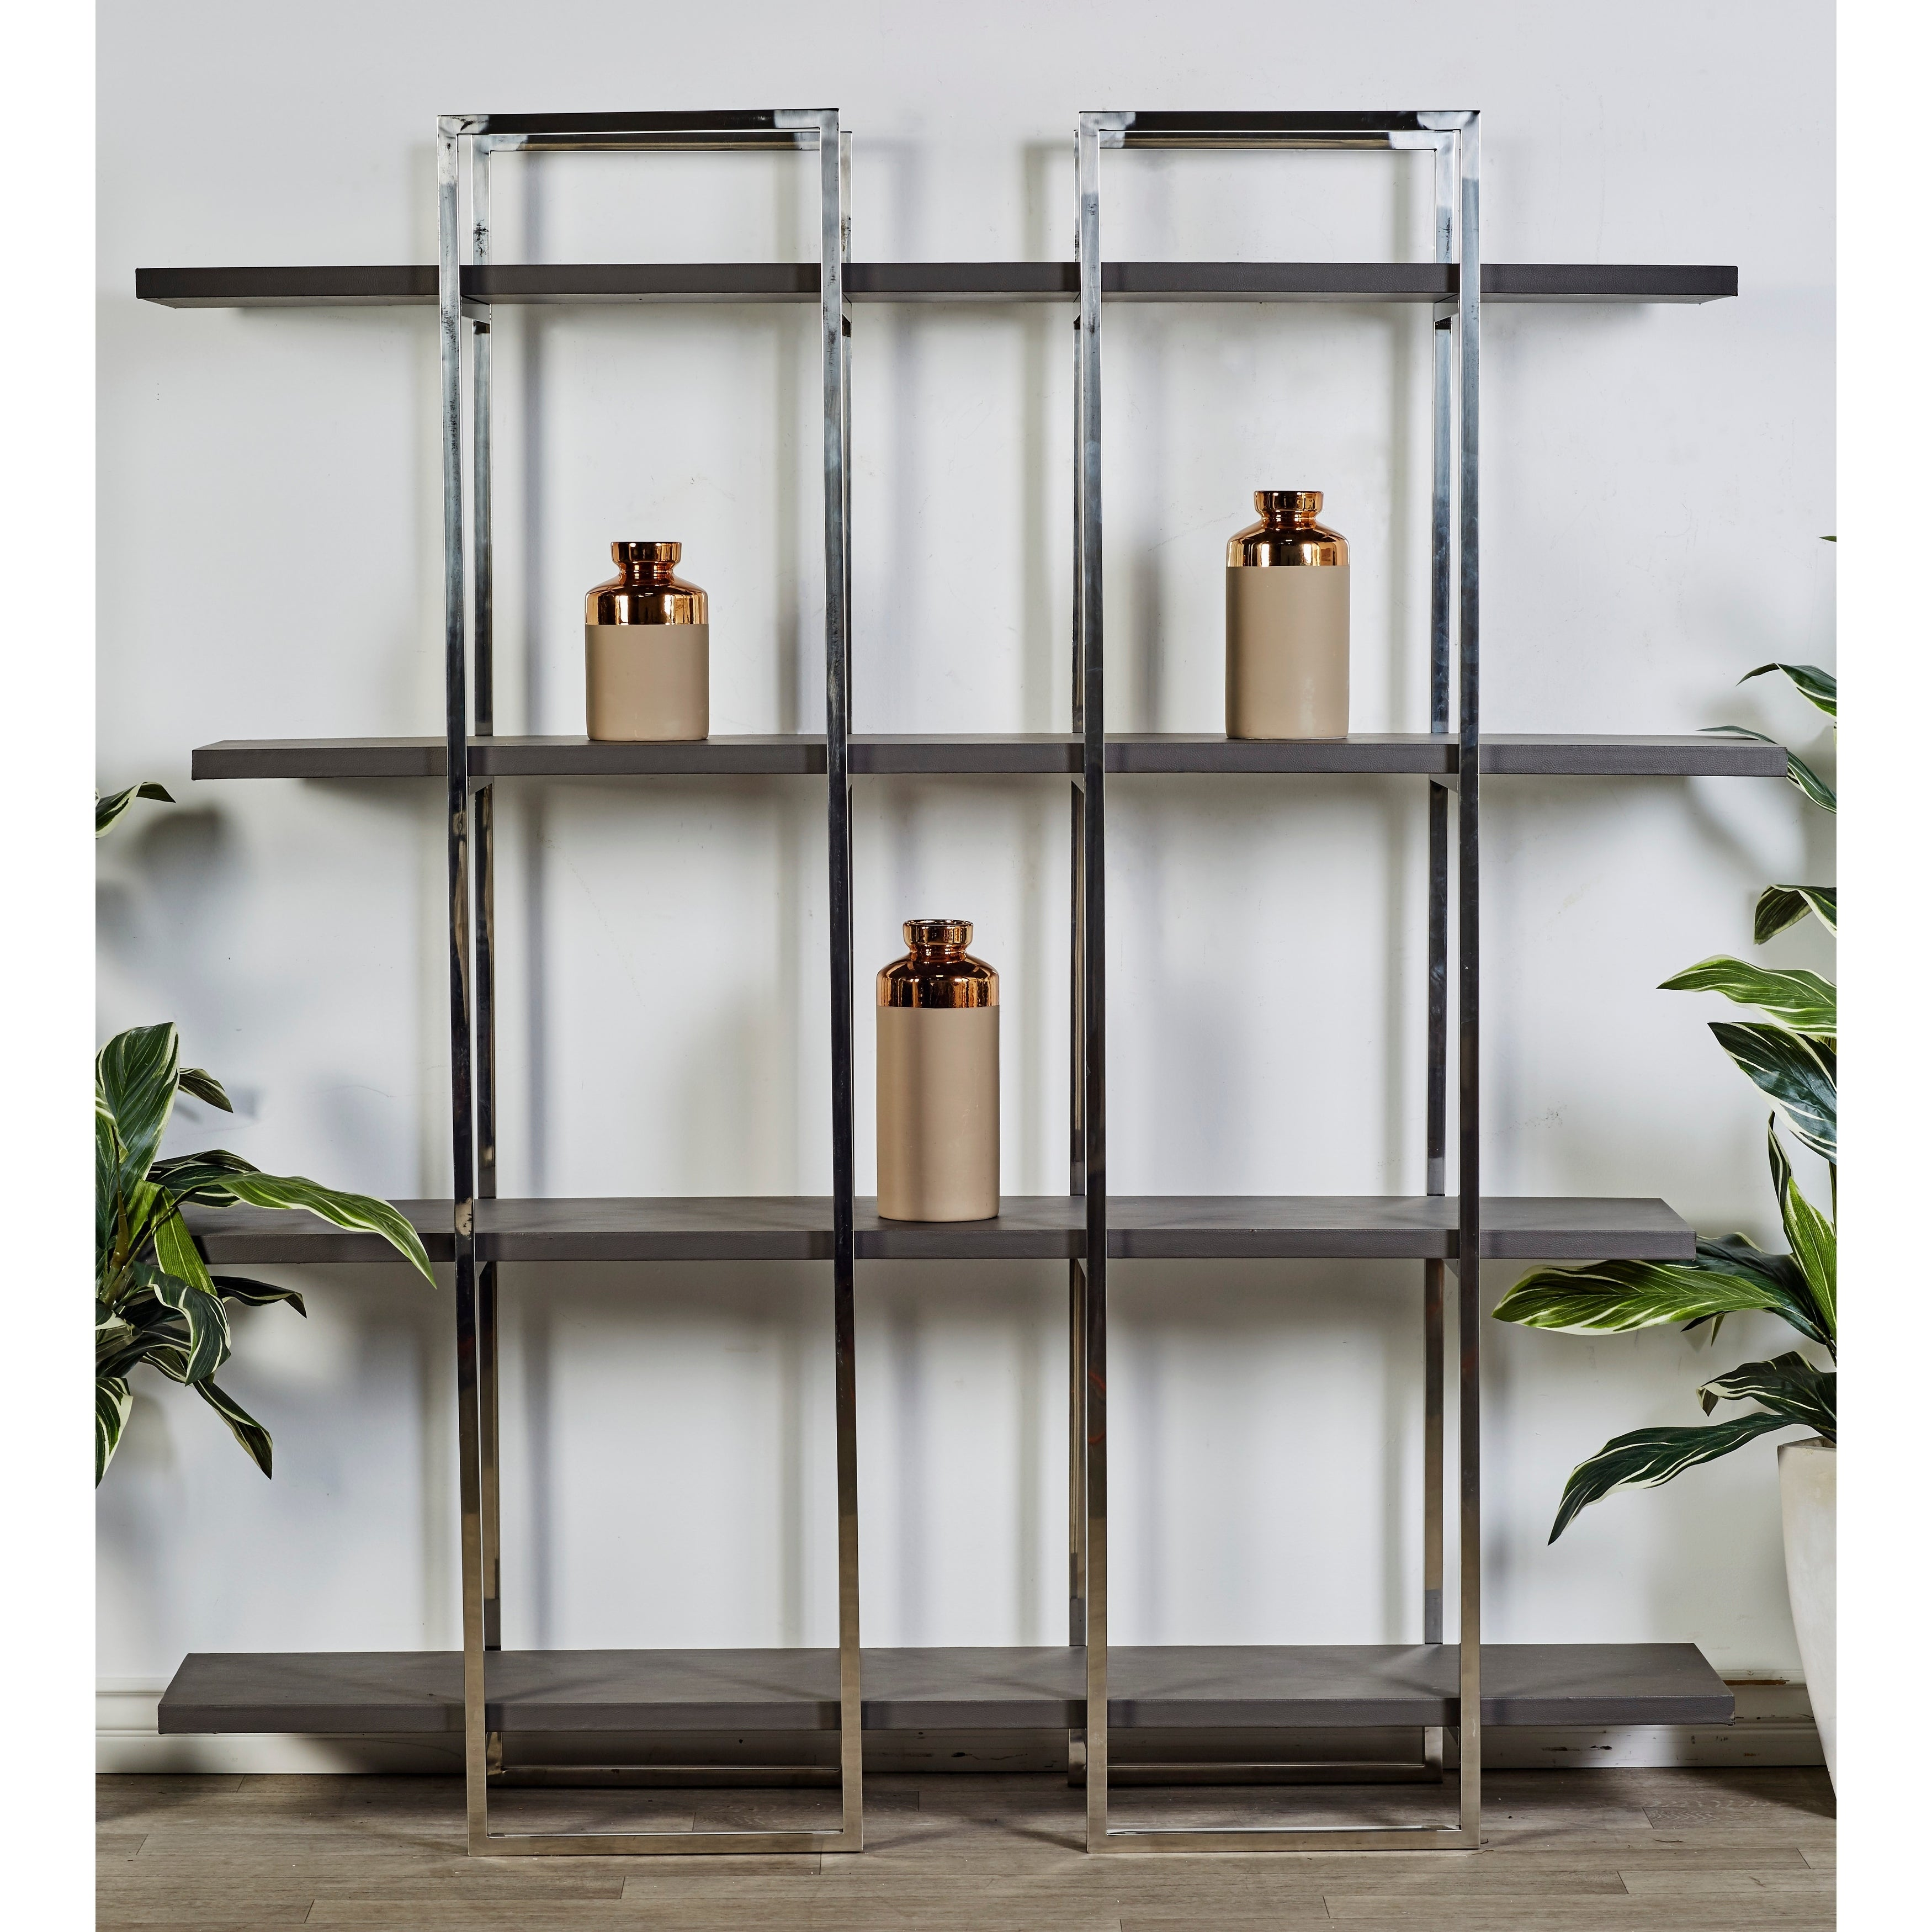 Studio 350 Wood Stainless Steel Leather Shelf 63 inches w...